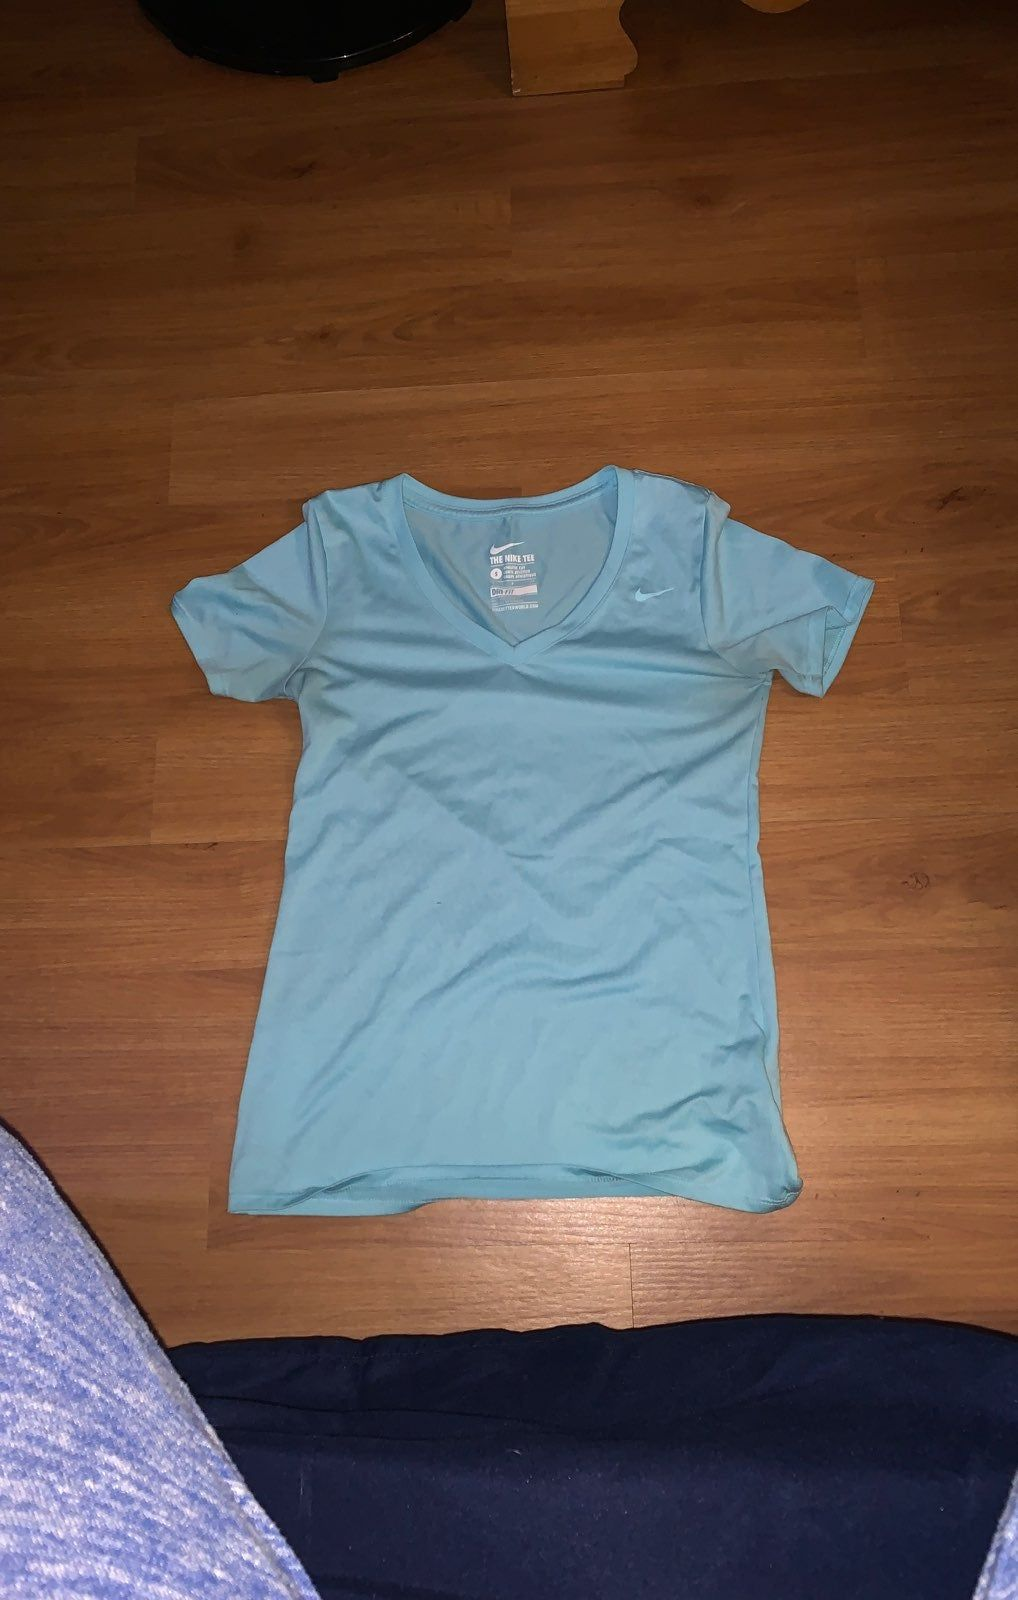 Light Ice Blue Nike T Shirt Dri Fit And Has Only Been Worn Twice Nike Tshirt Mens Tops Nike T